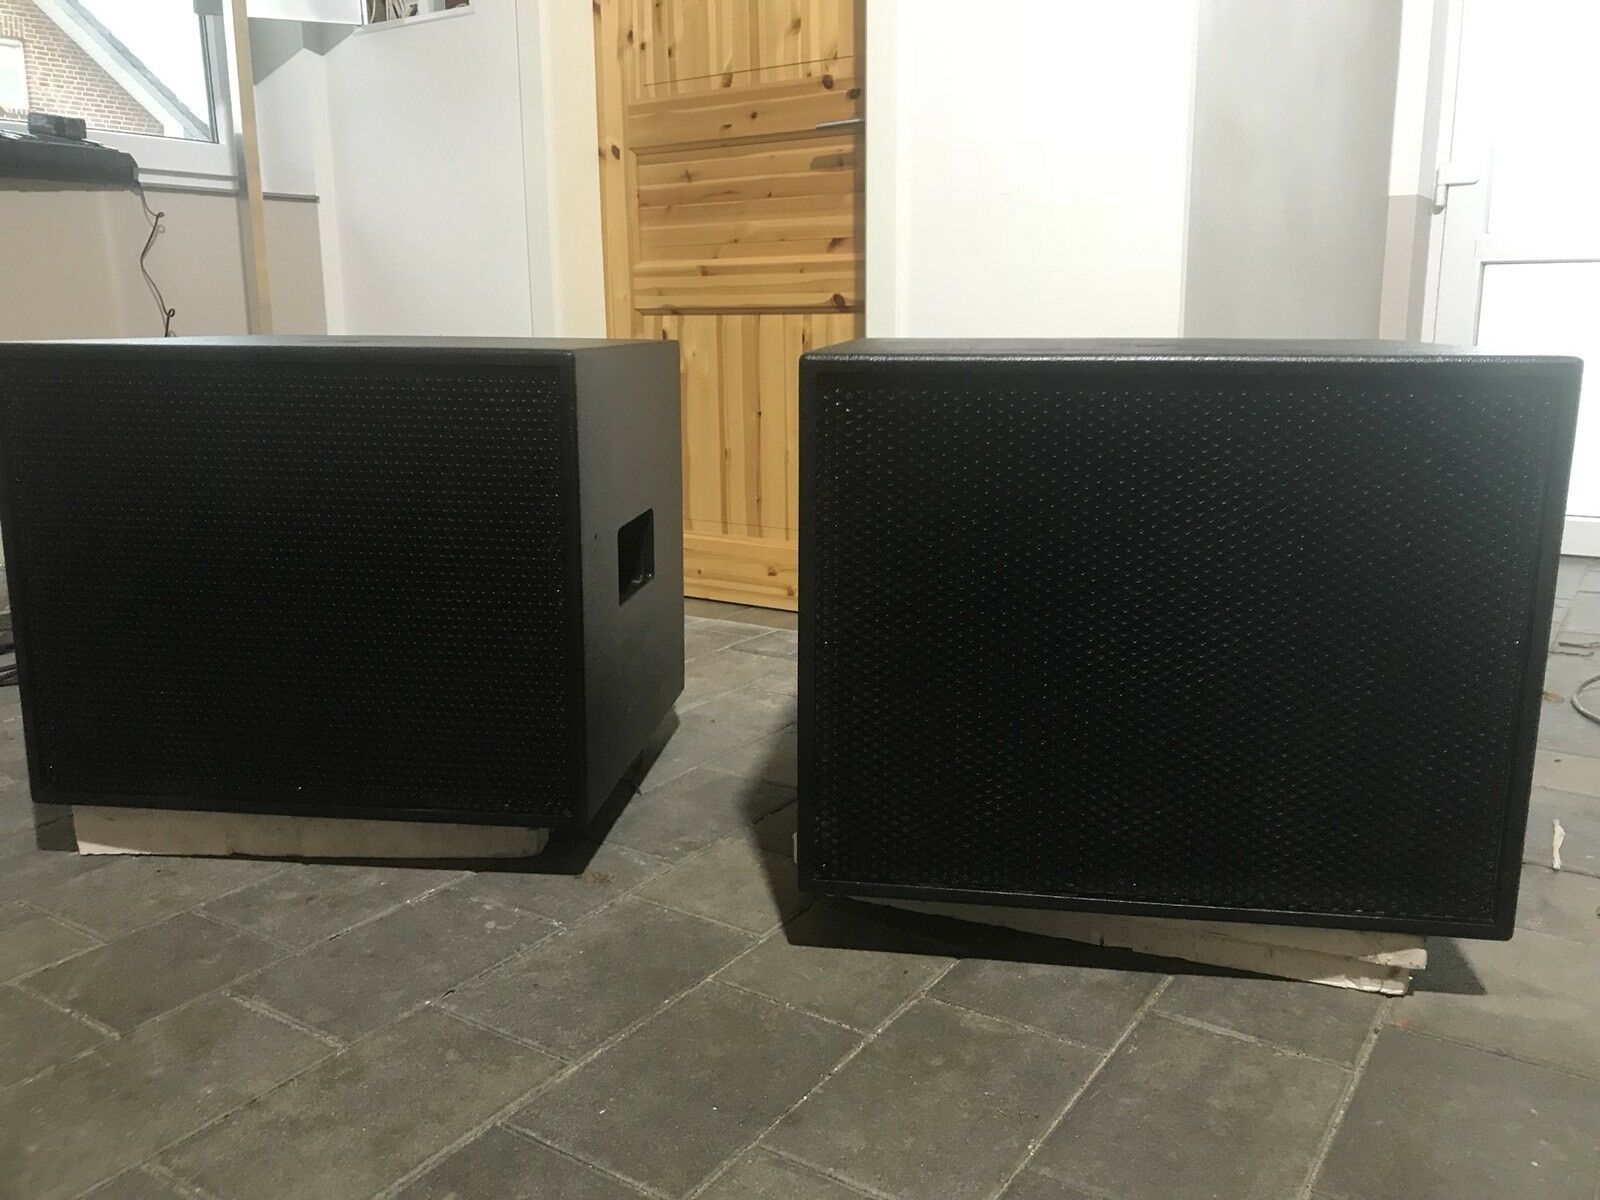 18 zoll aktiv subwoofer asa va pd 18 900w rms rcf und. Black Bedroom Furniture Sets. Home Design Ideas